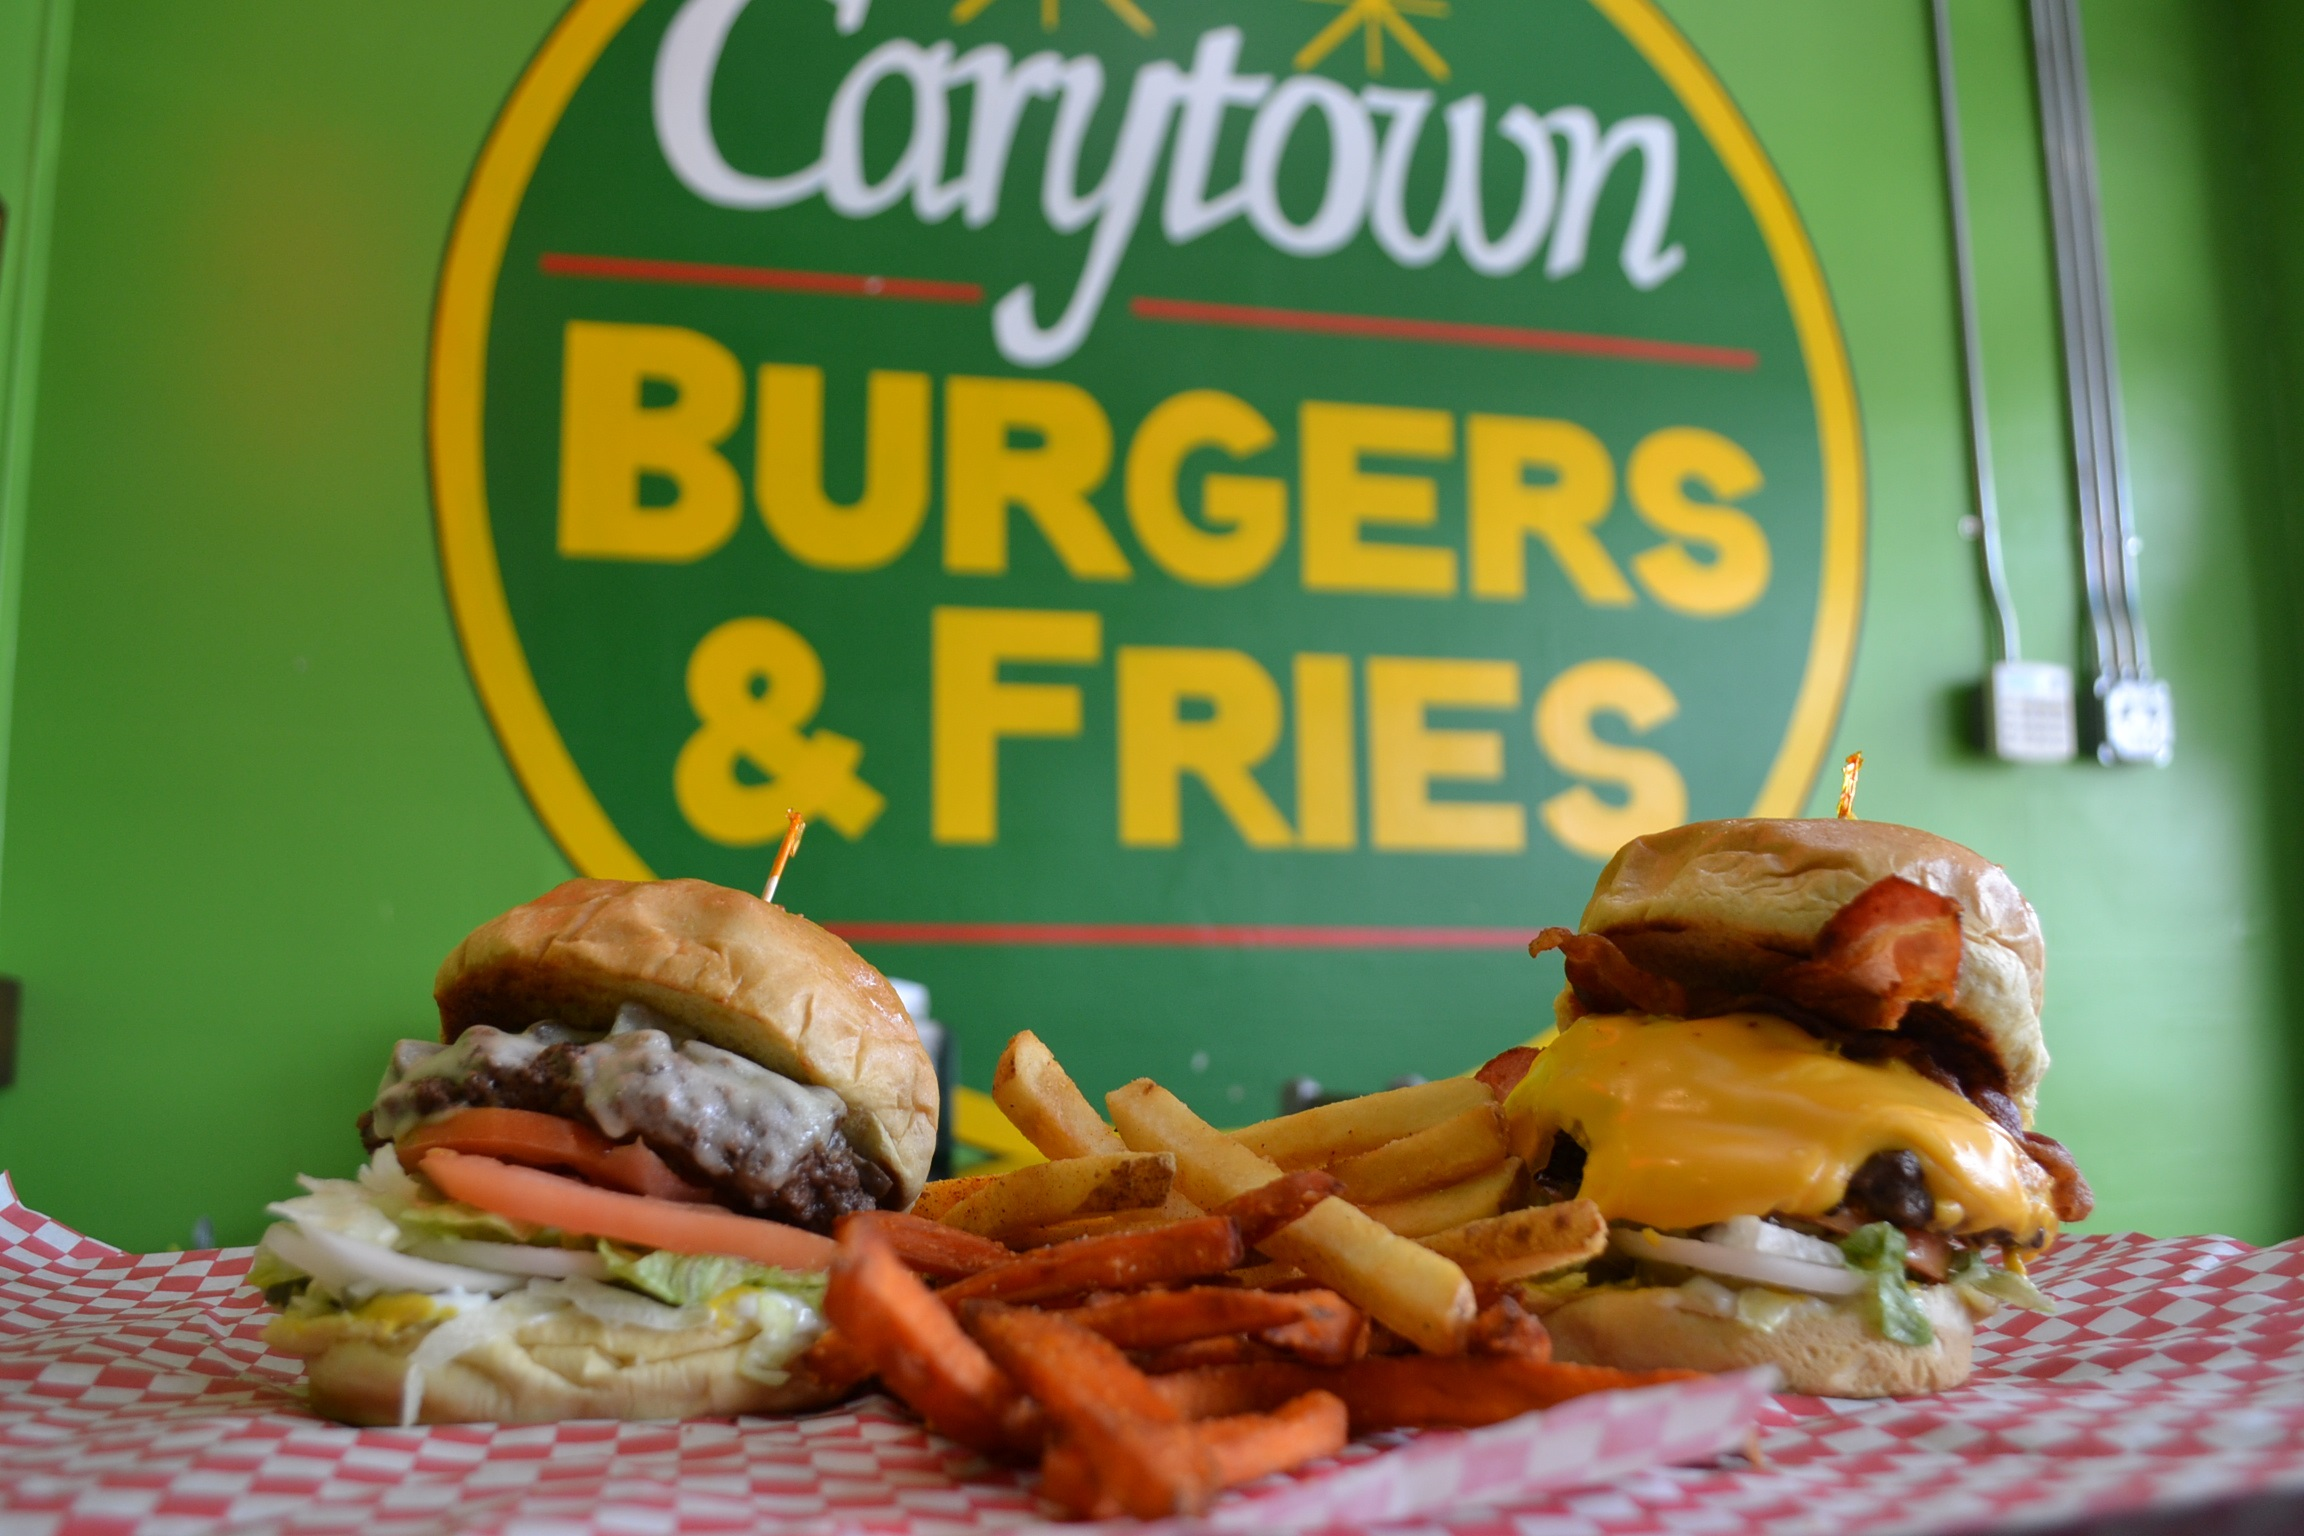 Carytown Burgers & Fries | Burger Restaurants in Richmond, VA